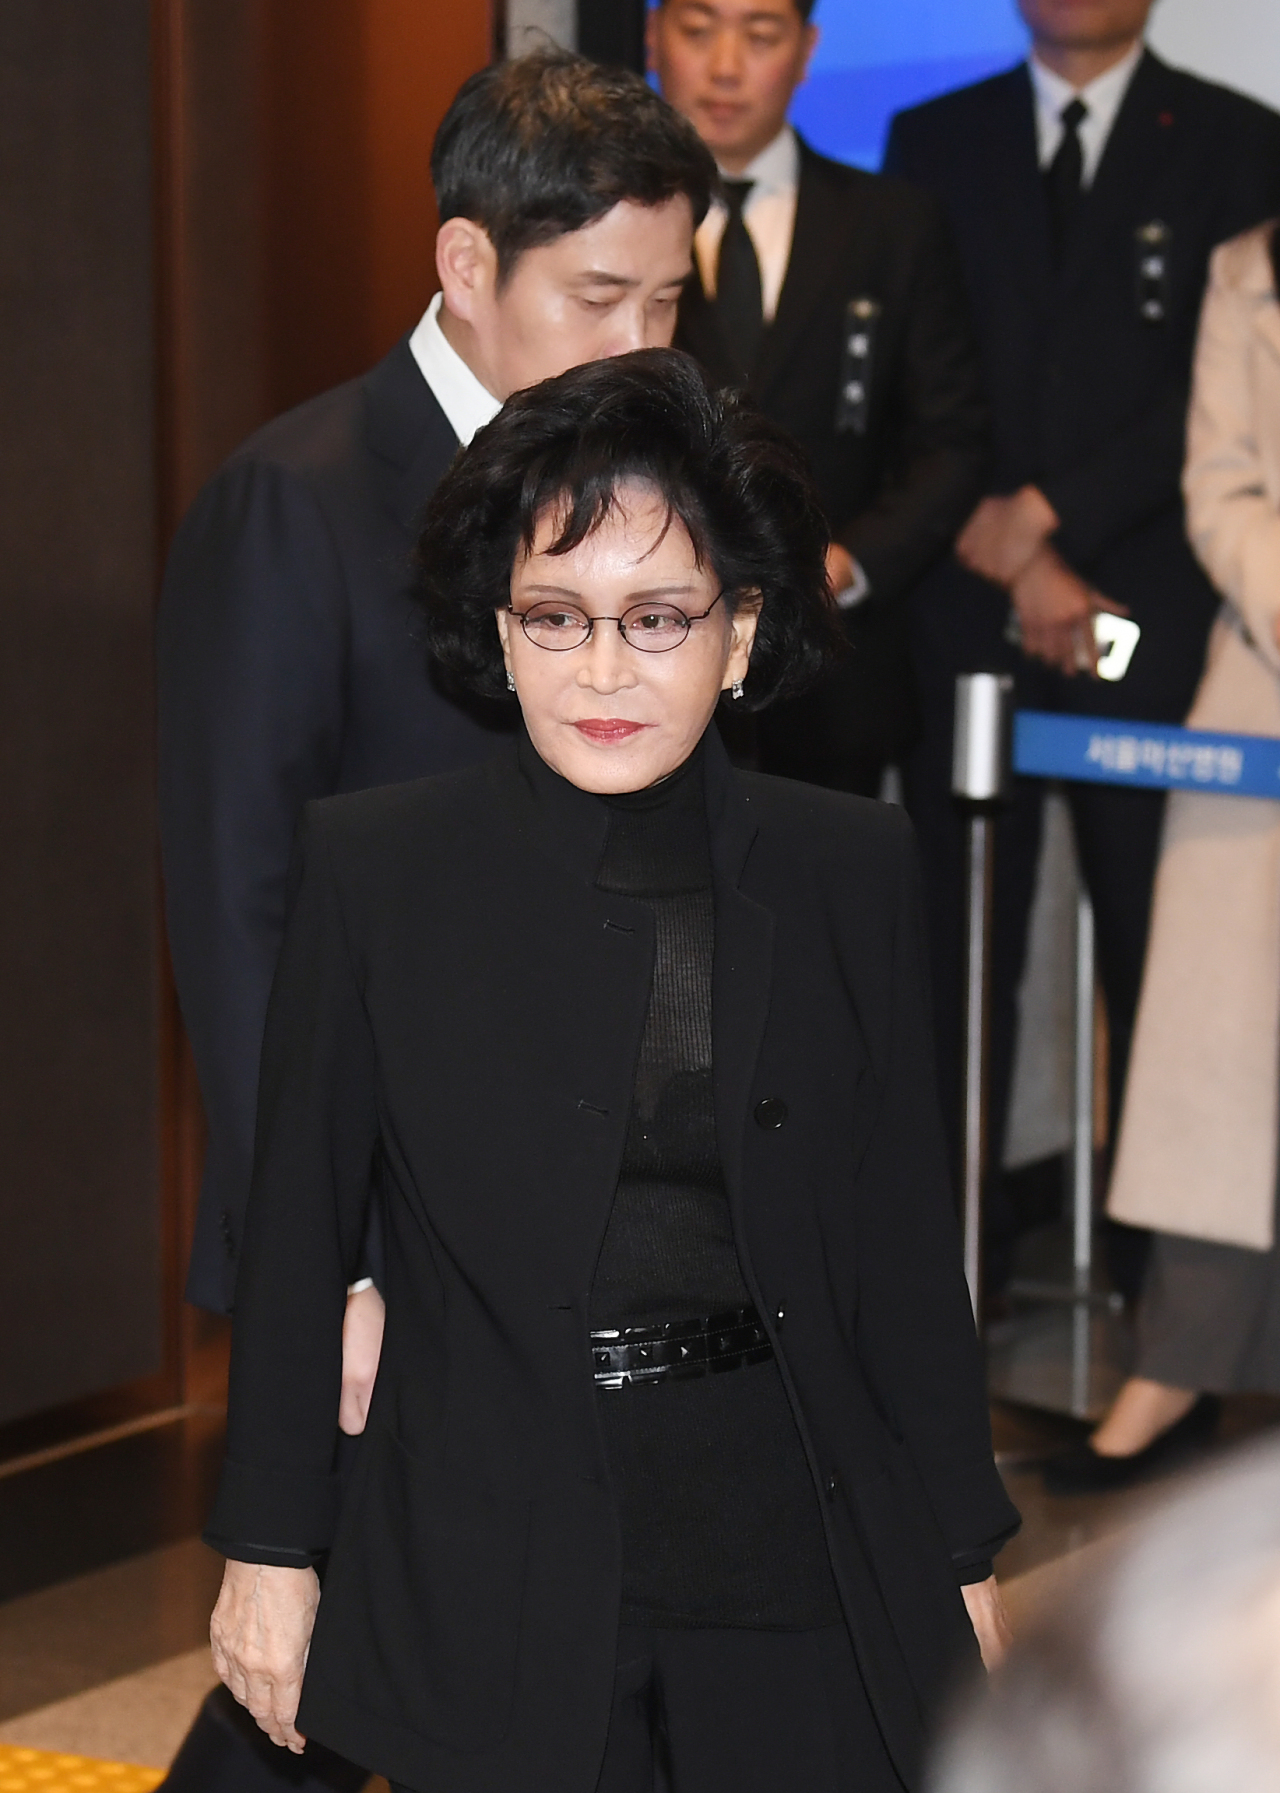 Shinsegae Group Chairwoman Lee Myeong-hee (Yonhap)